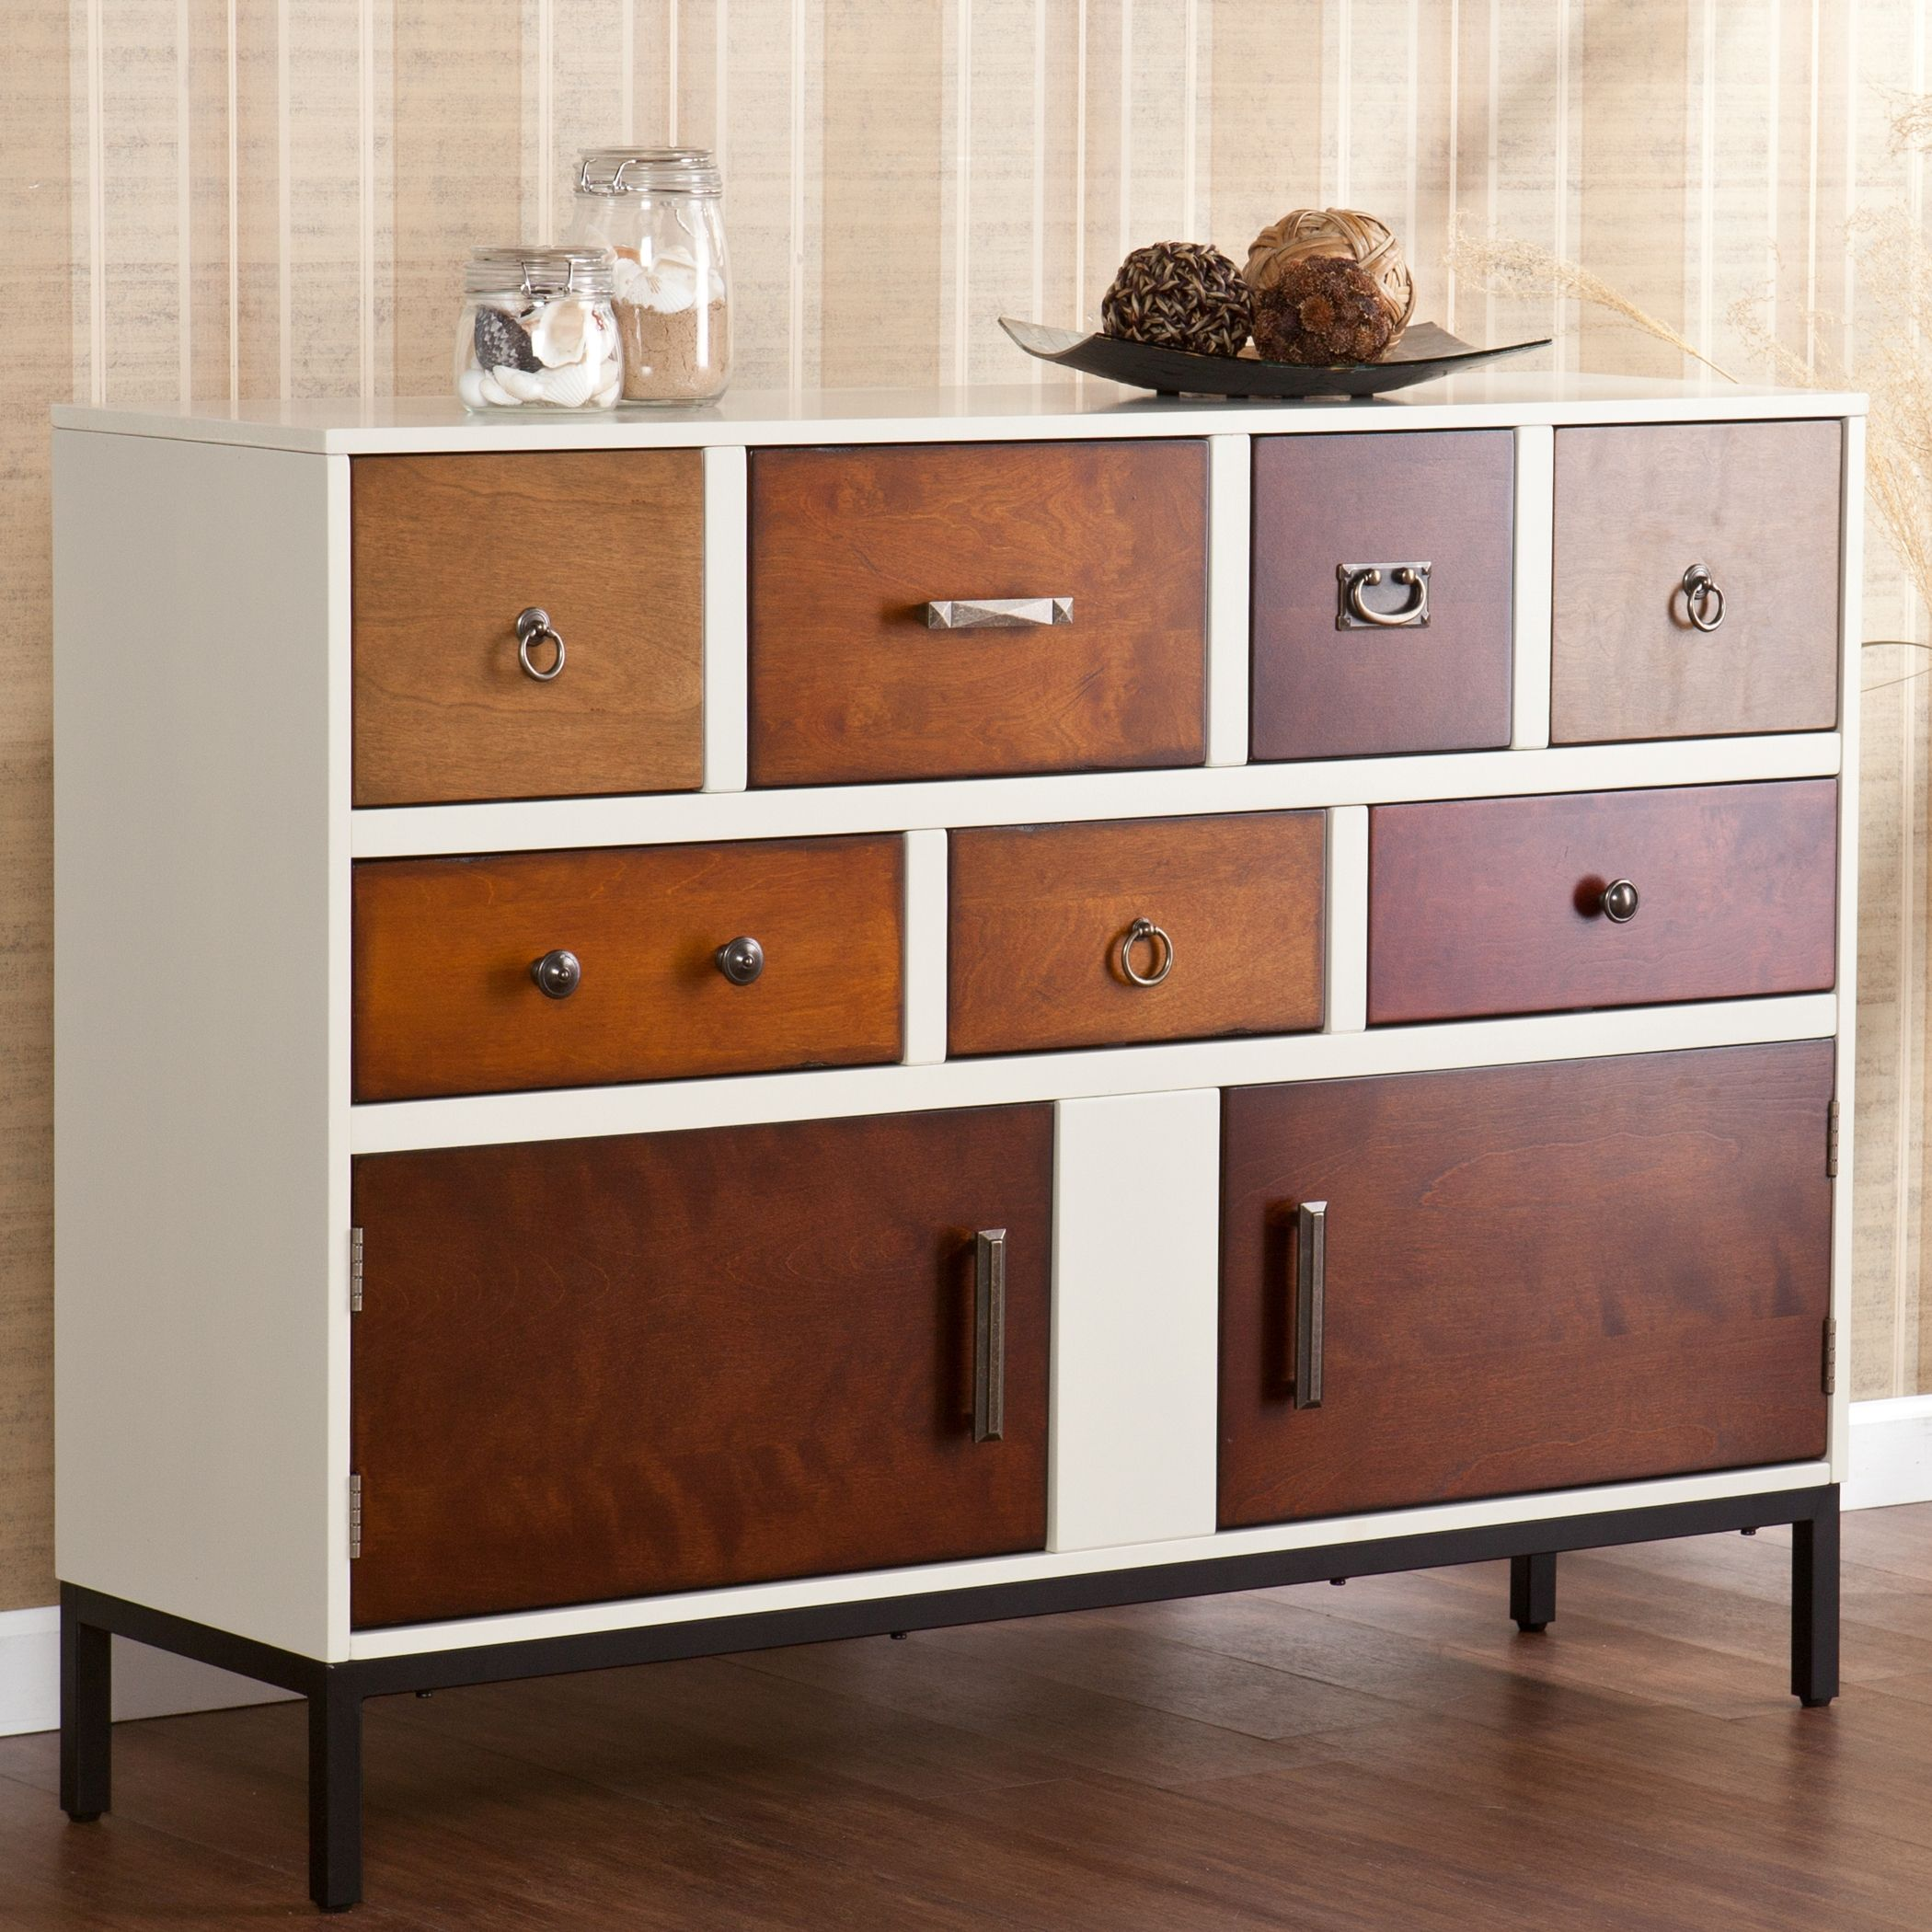 Add storage and beauty to your home with this Greyson seven drawer